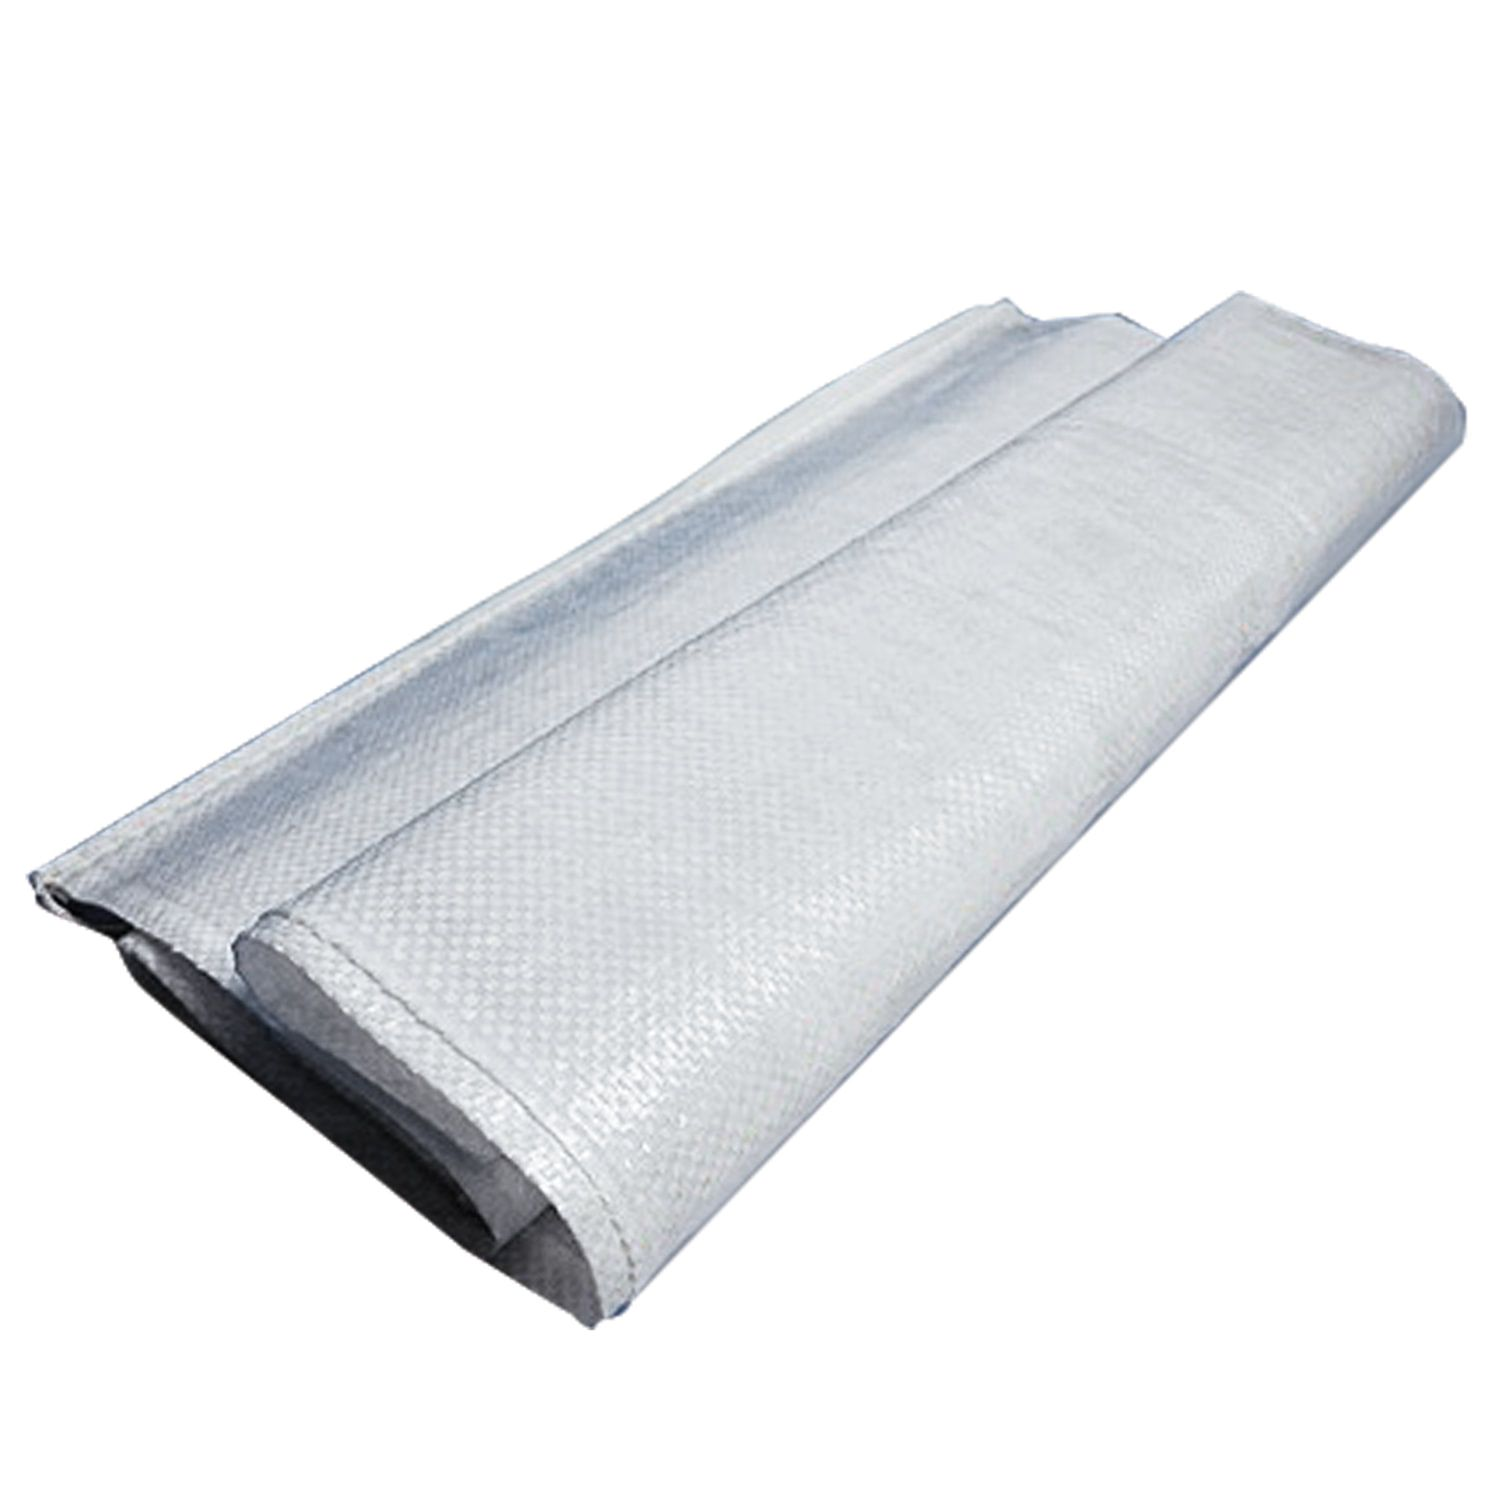 Polypropylene bags up to 50 kg, set of 100 pcs., 105x55 cm, weight 72 g, for a wide range of applications, white